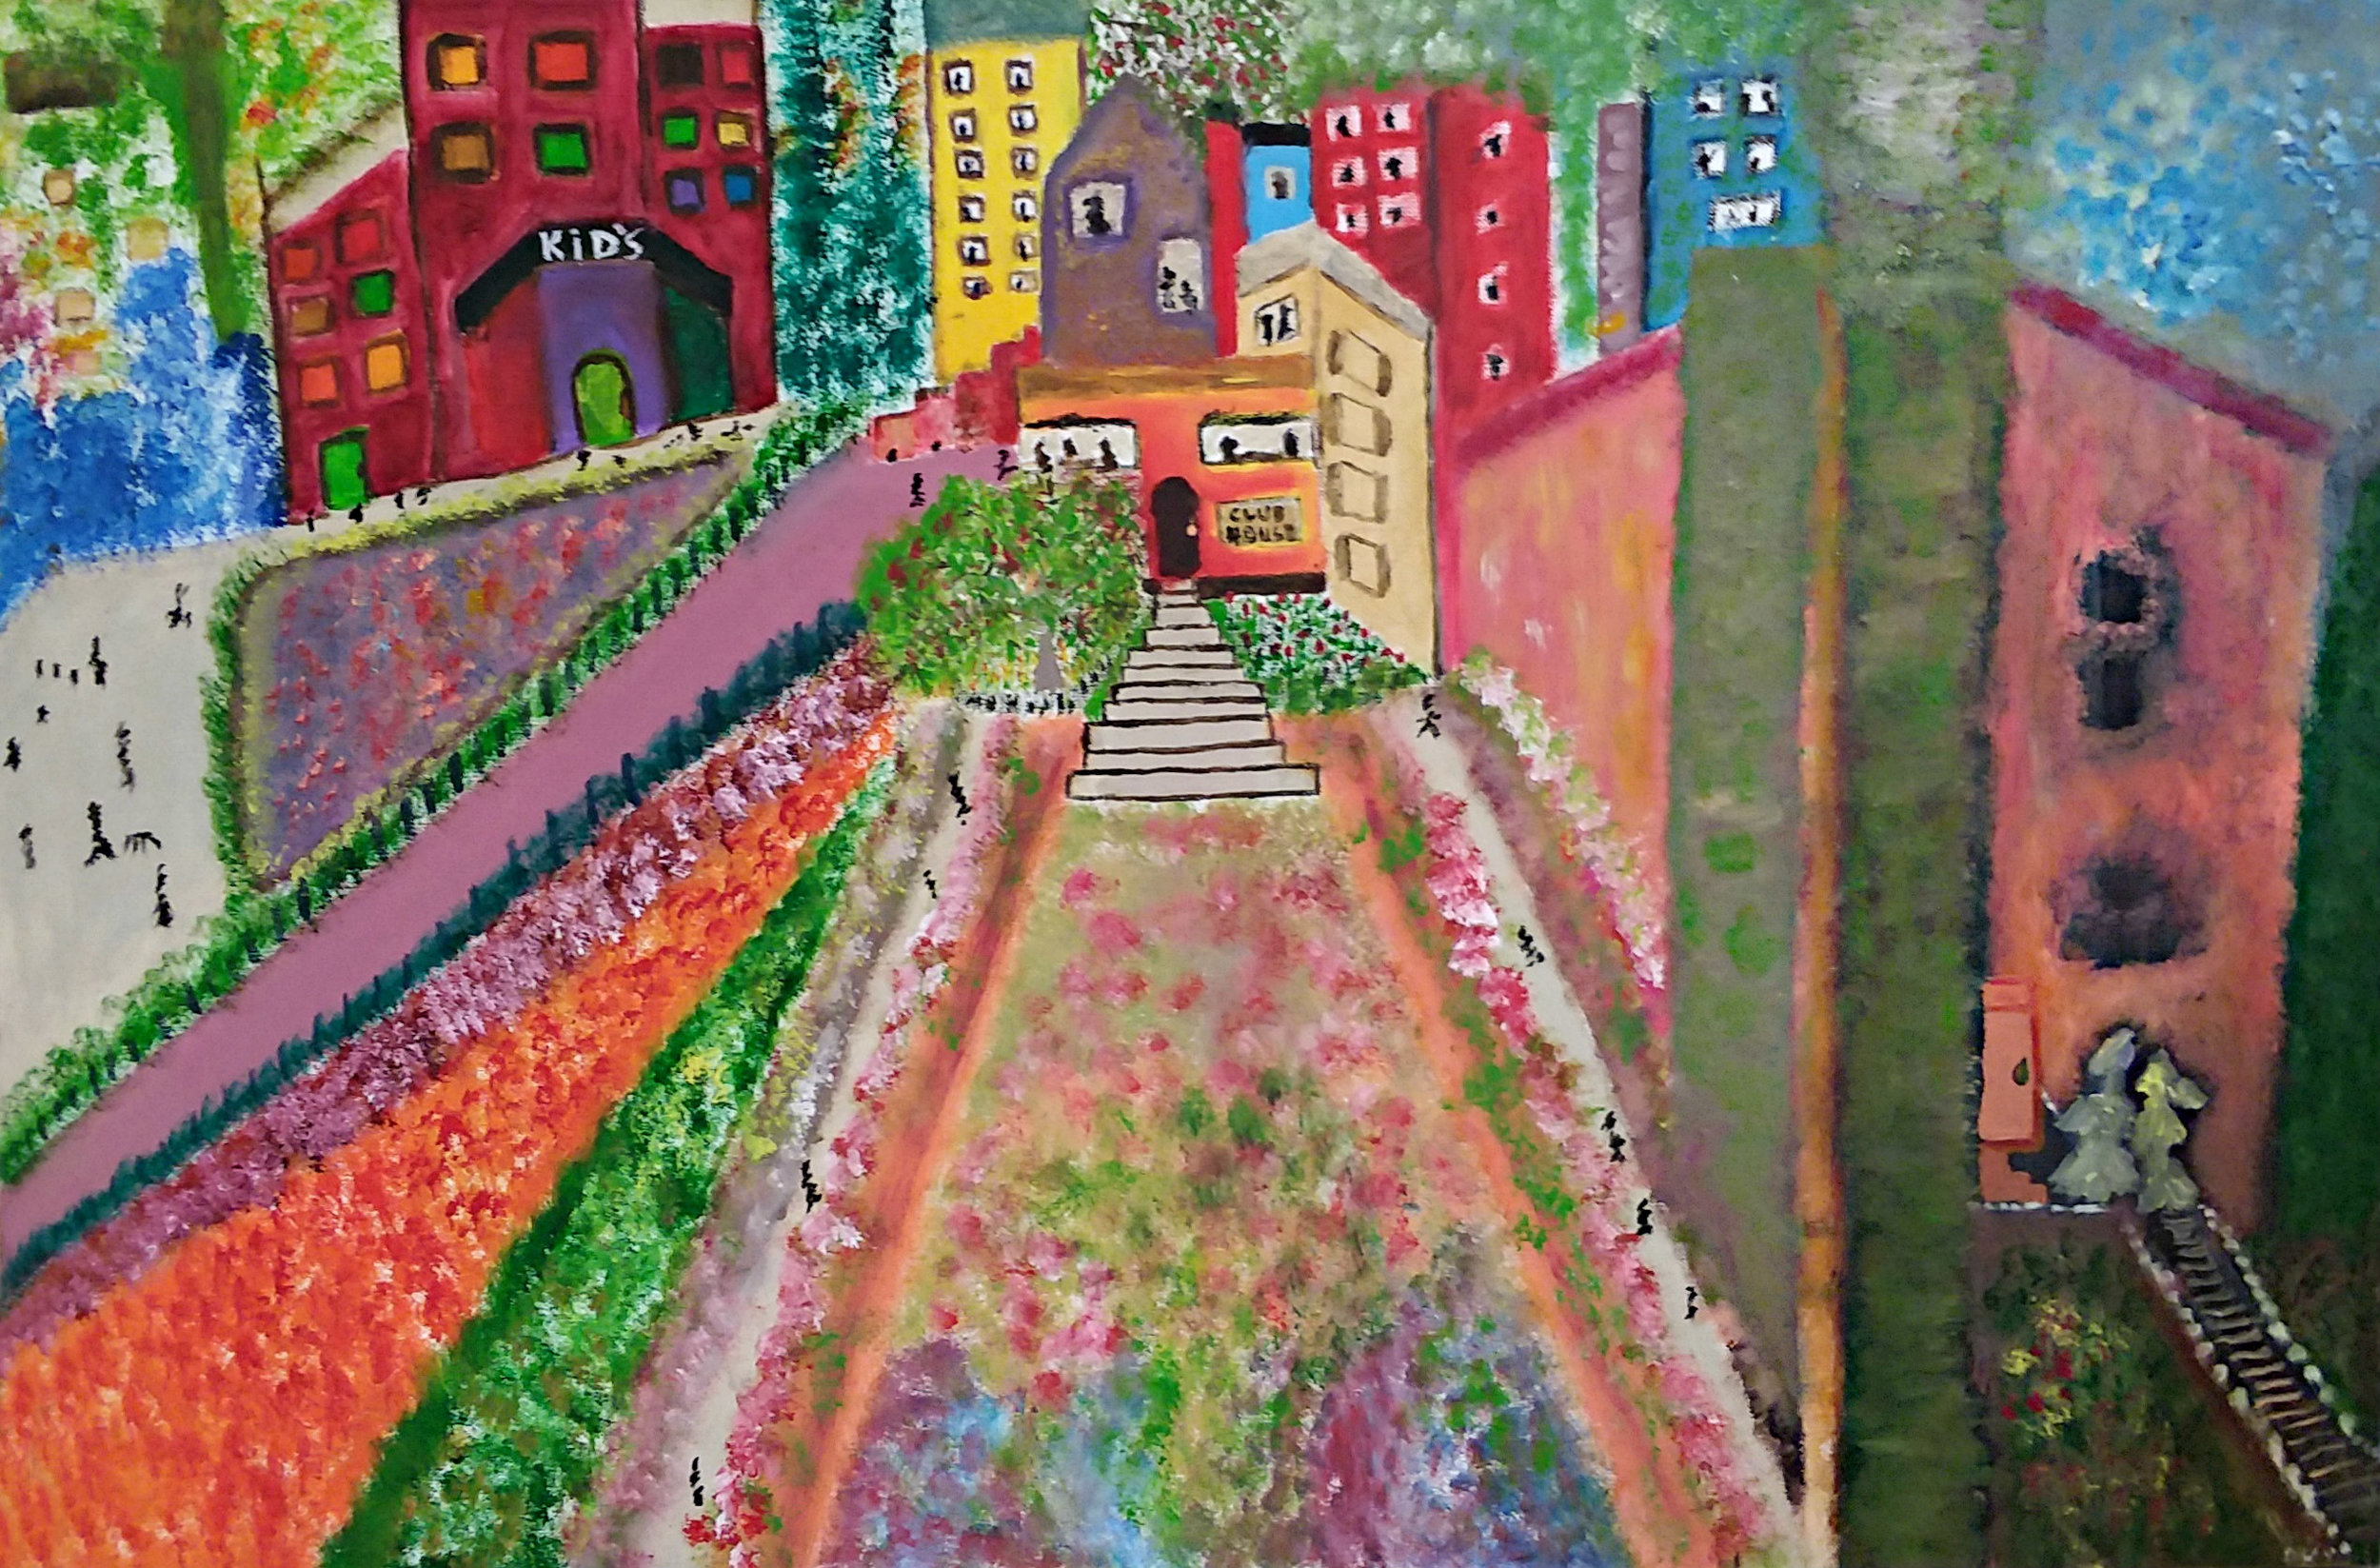 Urban Garden Oil/Touch of Acrylic 30x40 (8/2017) $900